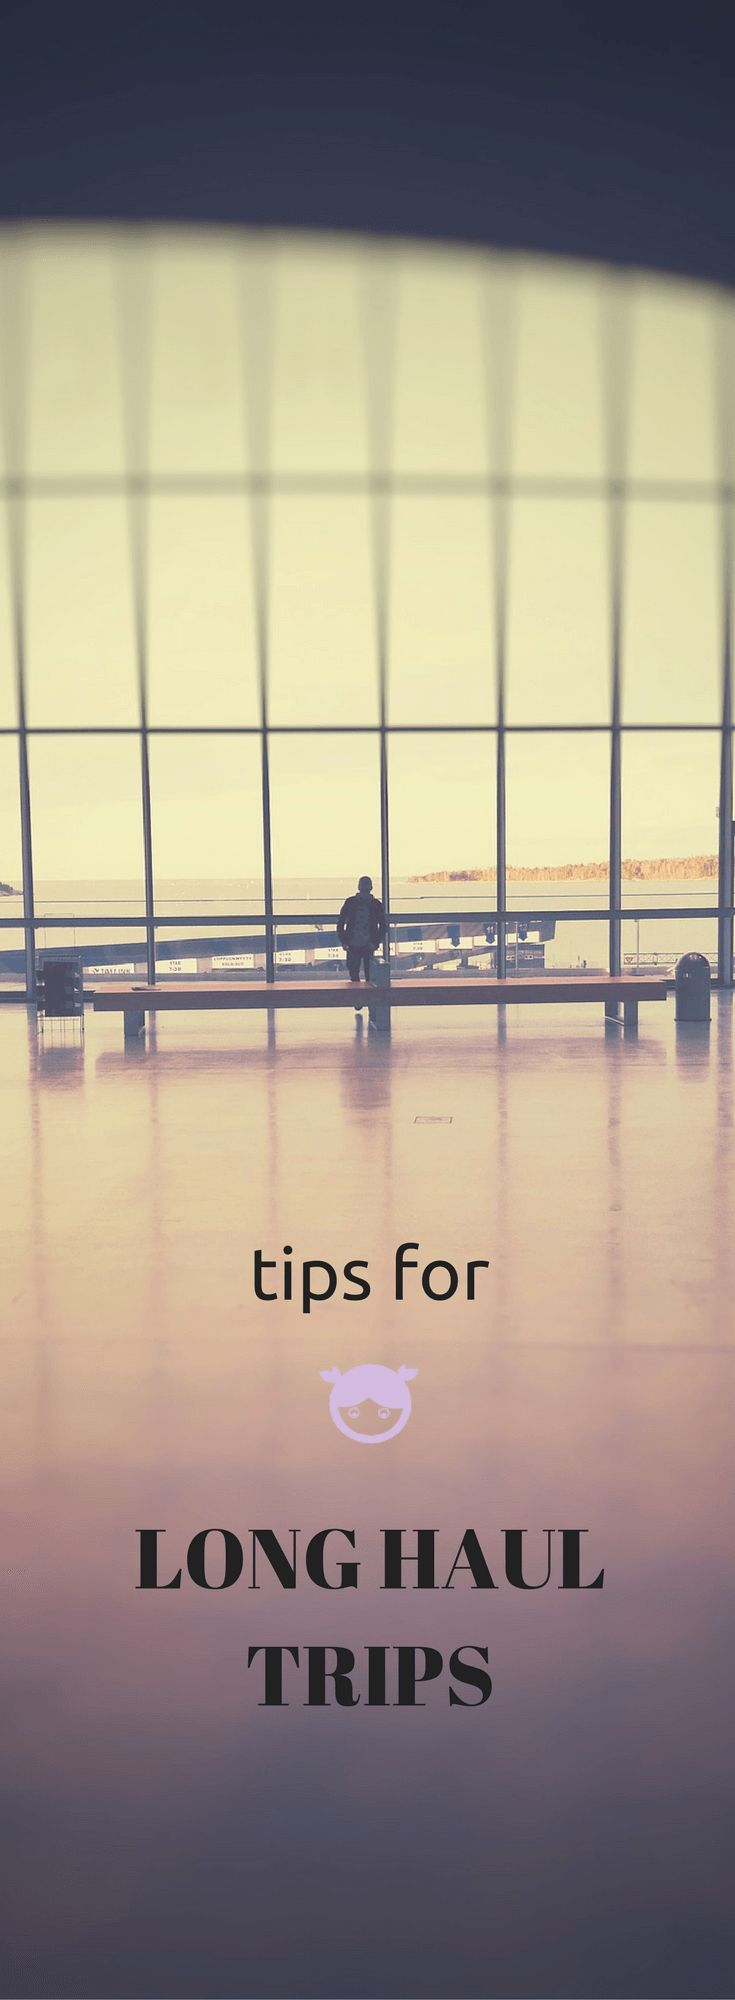 If you plan on travelling a lot it is inevitable that you will end up on a long haul trip. Whether this is all on the plane or a lot of time in airports, long haul trips are NOT fun. There are some things you can do to make them more bearable.